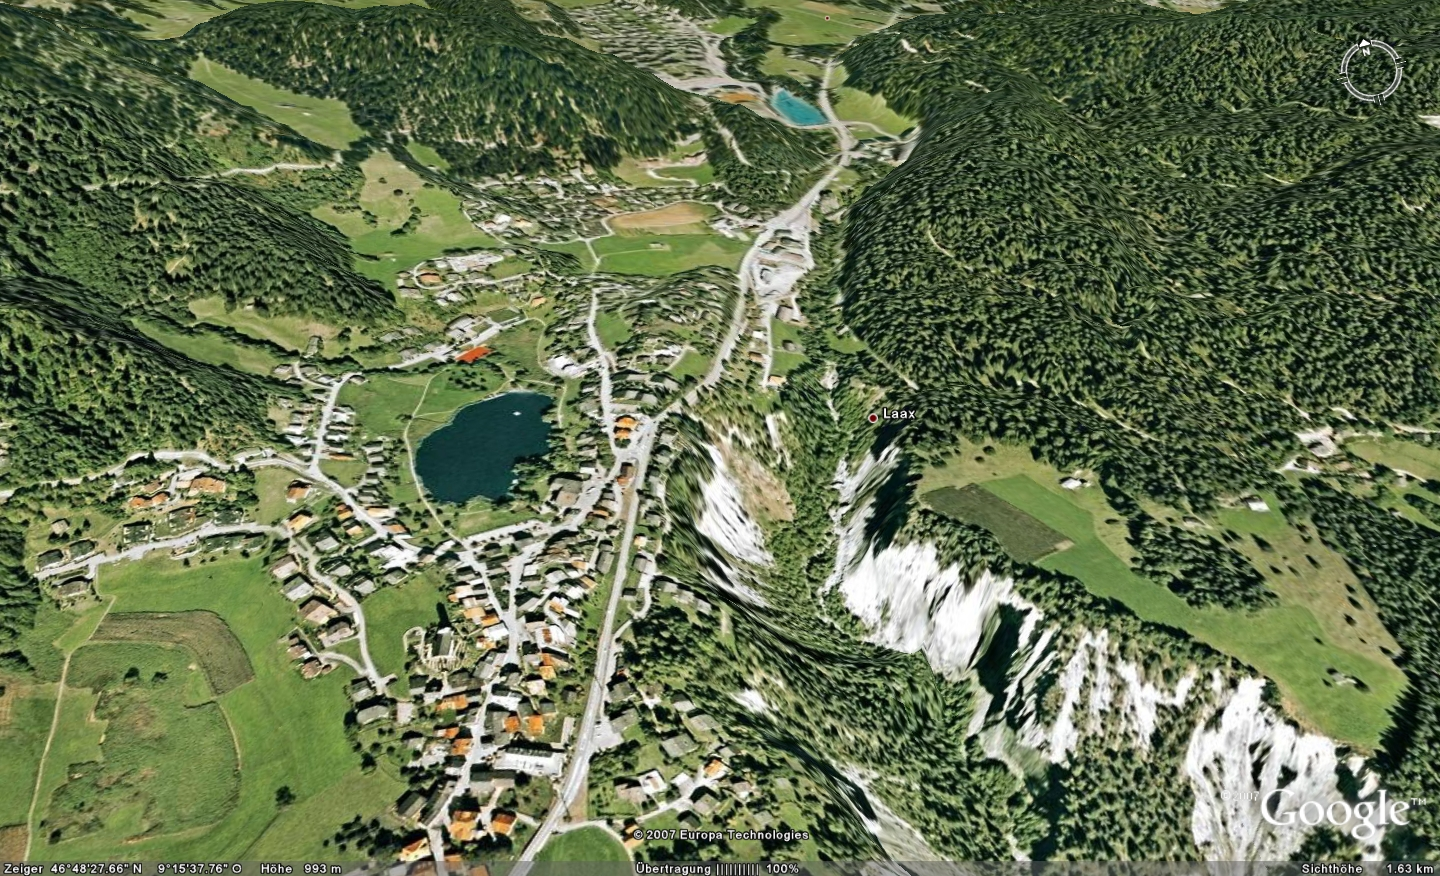 Google earth and google maps with higher resolution for switzerland google earth laaxsmallg gumiabroncs Gallery